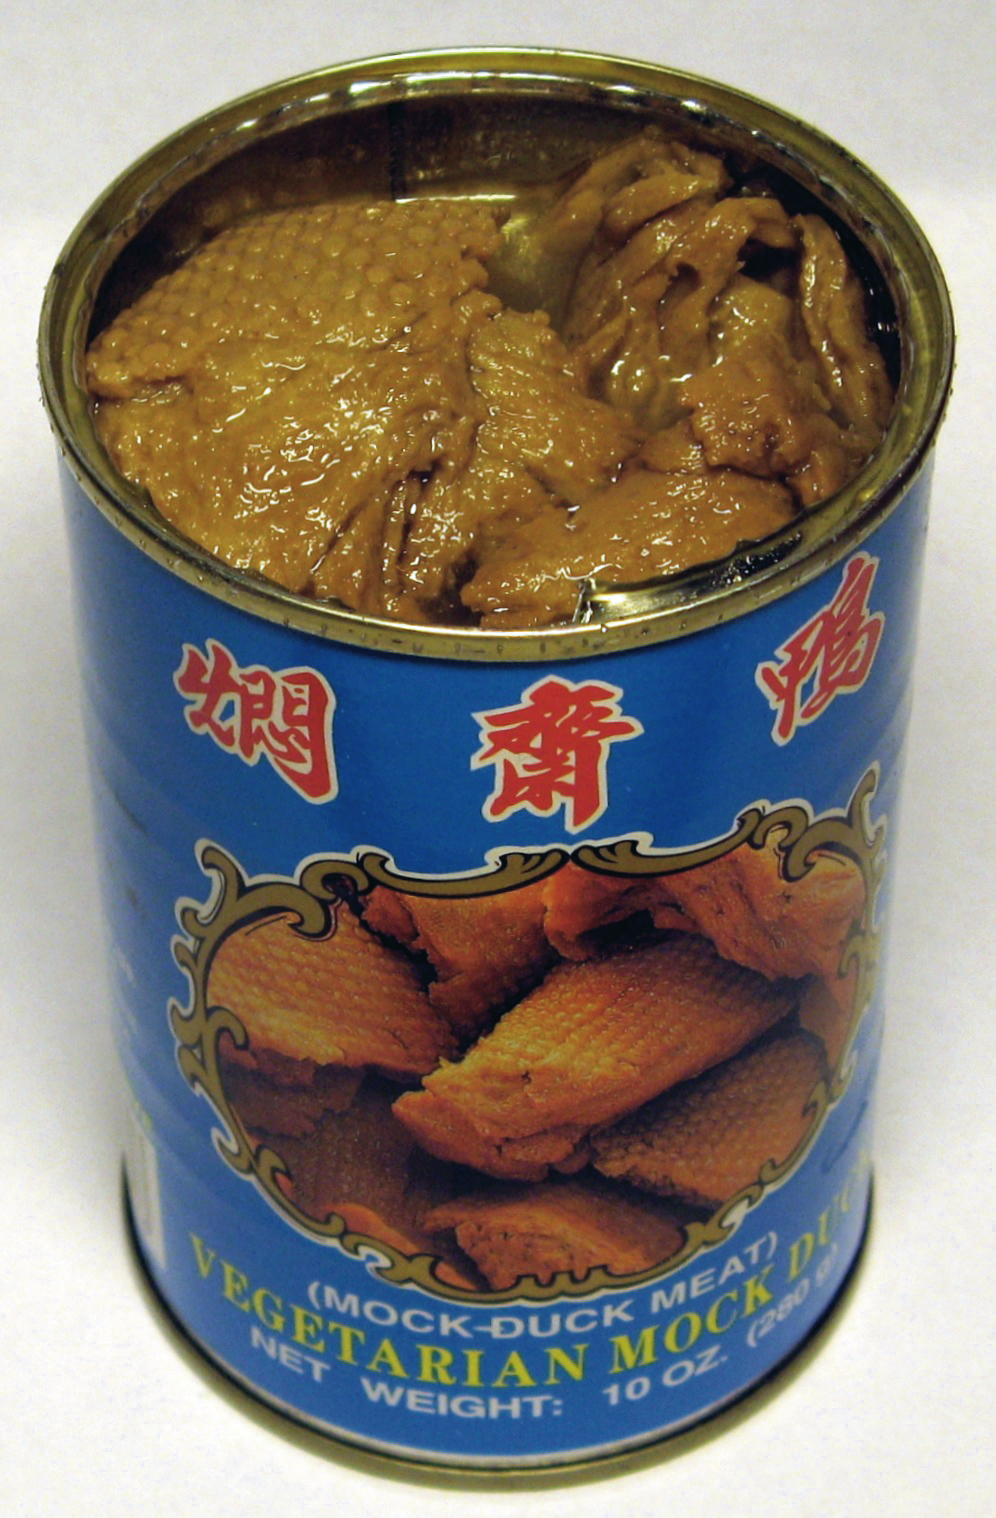 https://upload.wikimedia.org/wikipedia/commons/f/f2/Wheat_gluten_%28vegetarian_mock_duck%29_opened_can_%282007%29.jpg